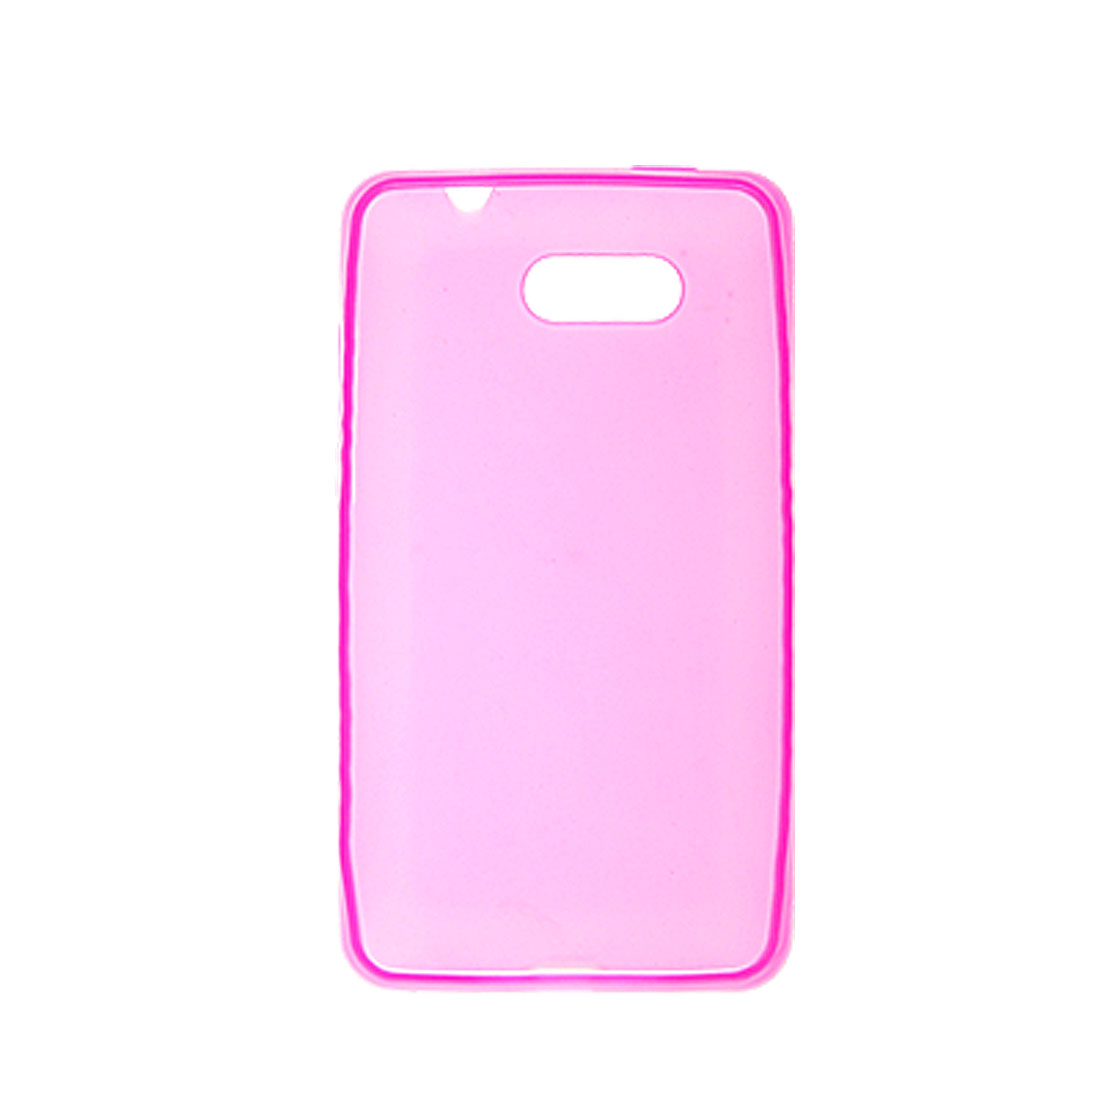 Clear Hot Pink Soft Plastic Cover Case for HTC HD Mini